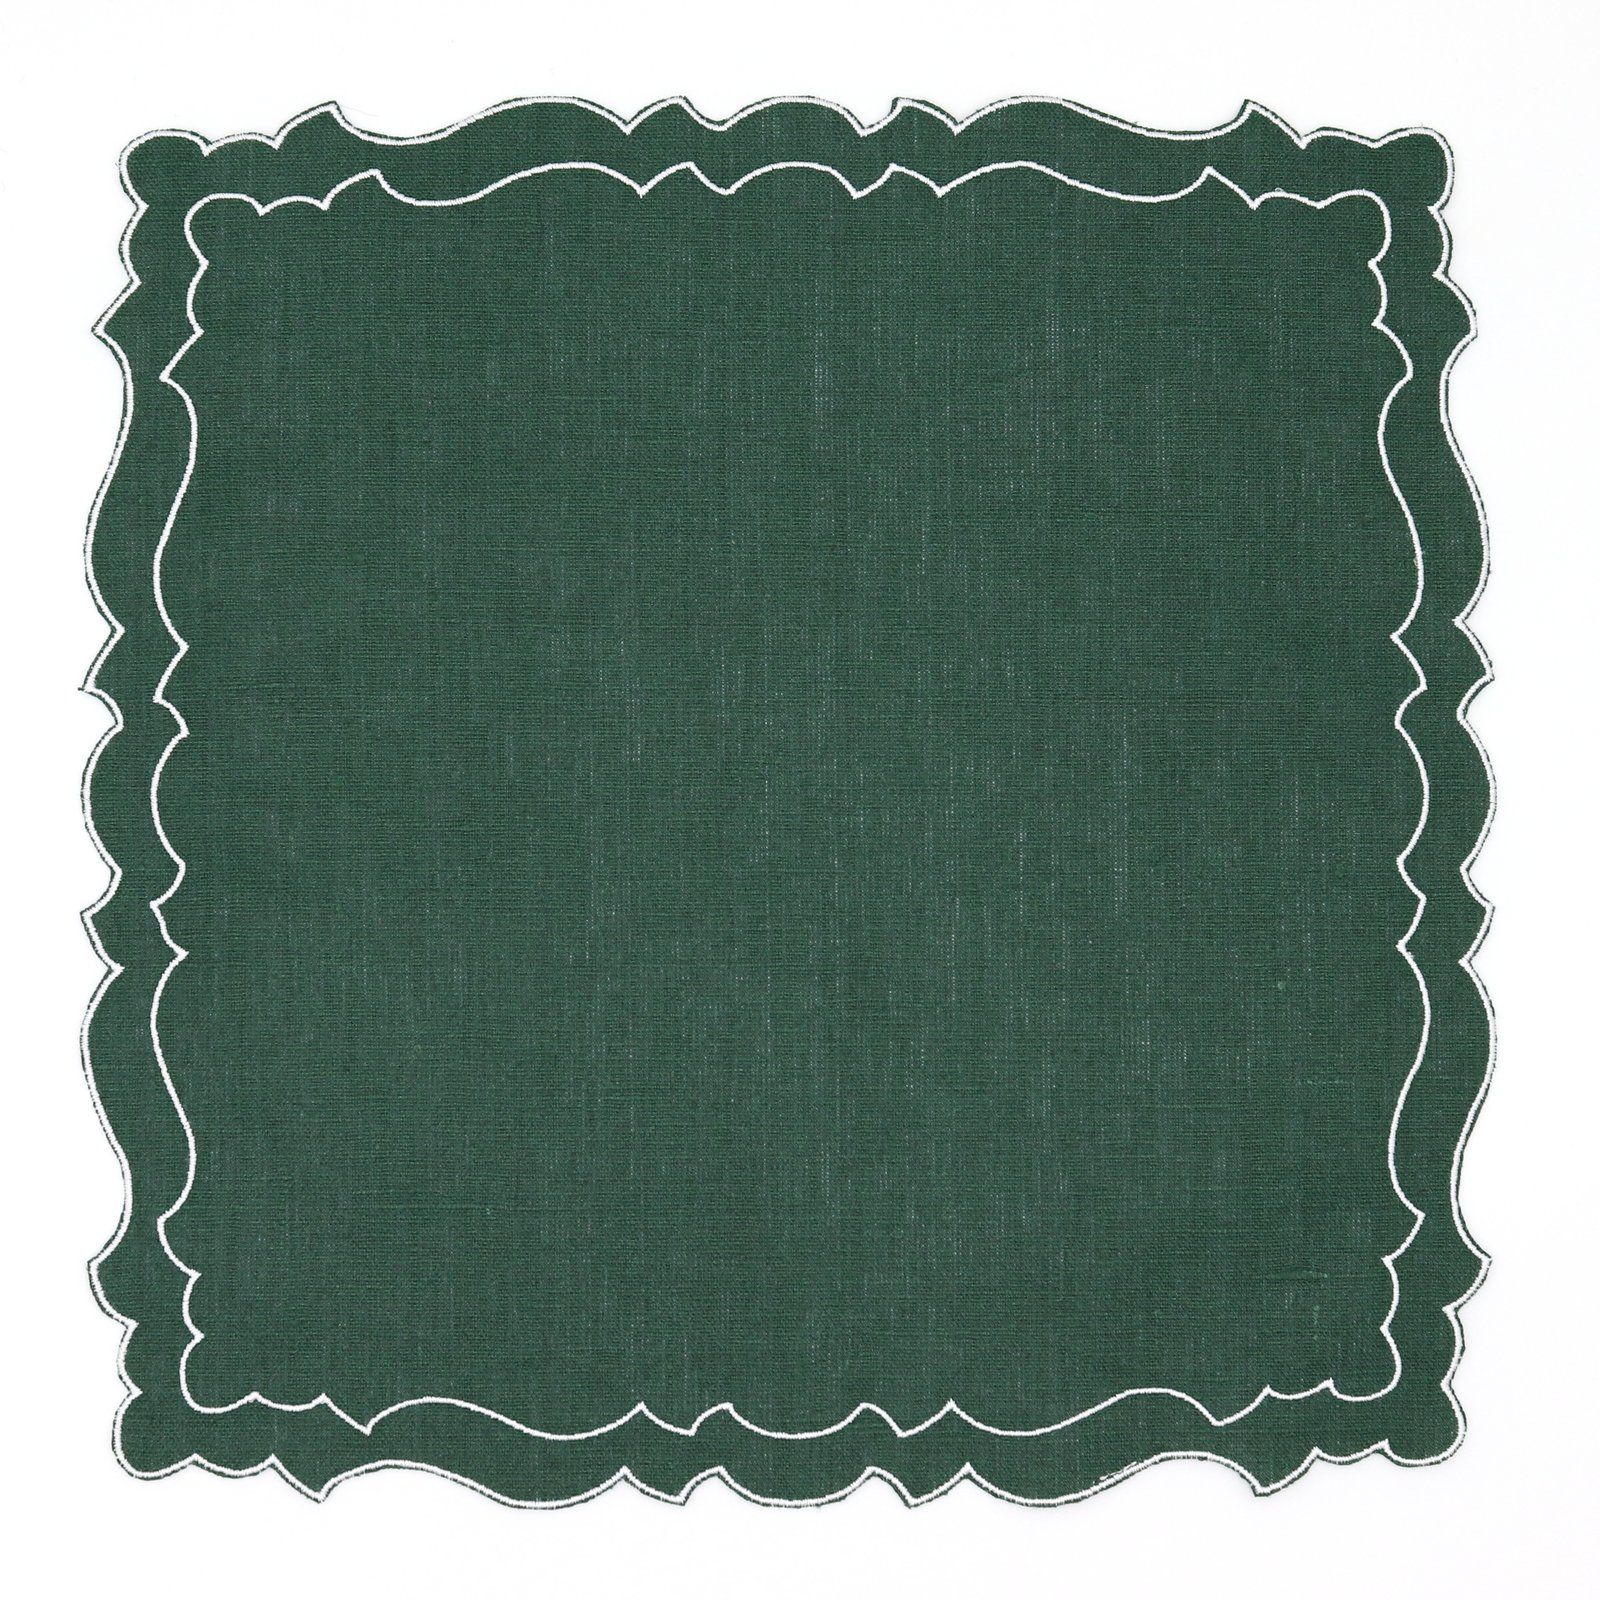 Set Of 6 Emilia Coated Italian Linen Placemats In Forest Green Rebecca Udall Linen Placemats Italian Linens Placemats